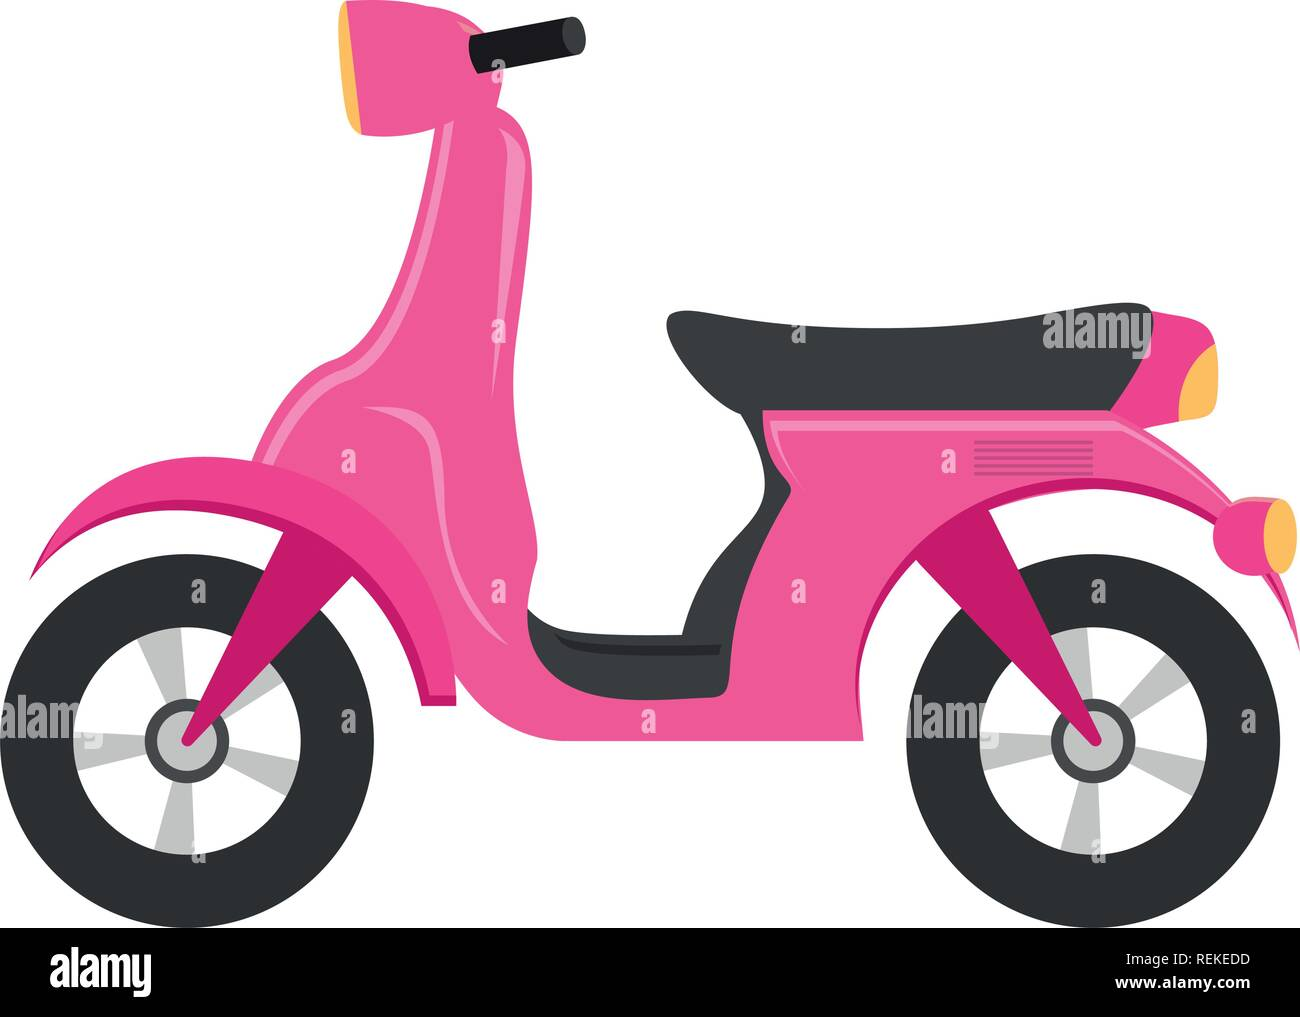 Motorcycle icon over white background, vector illustration - Stock Vector